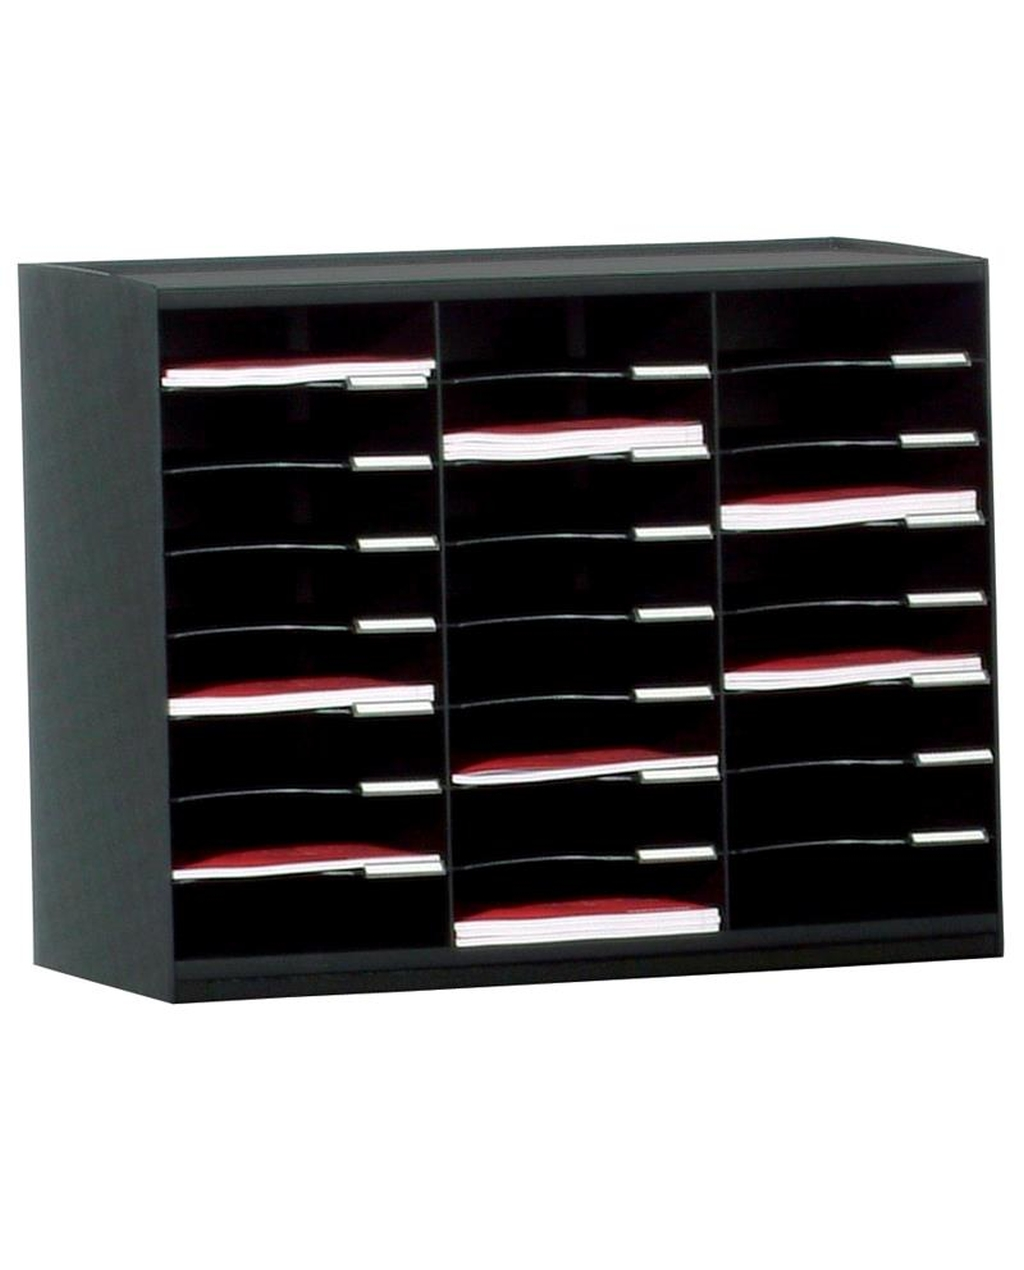 24 Compartment Mailsorter Black